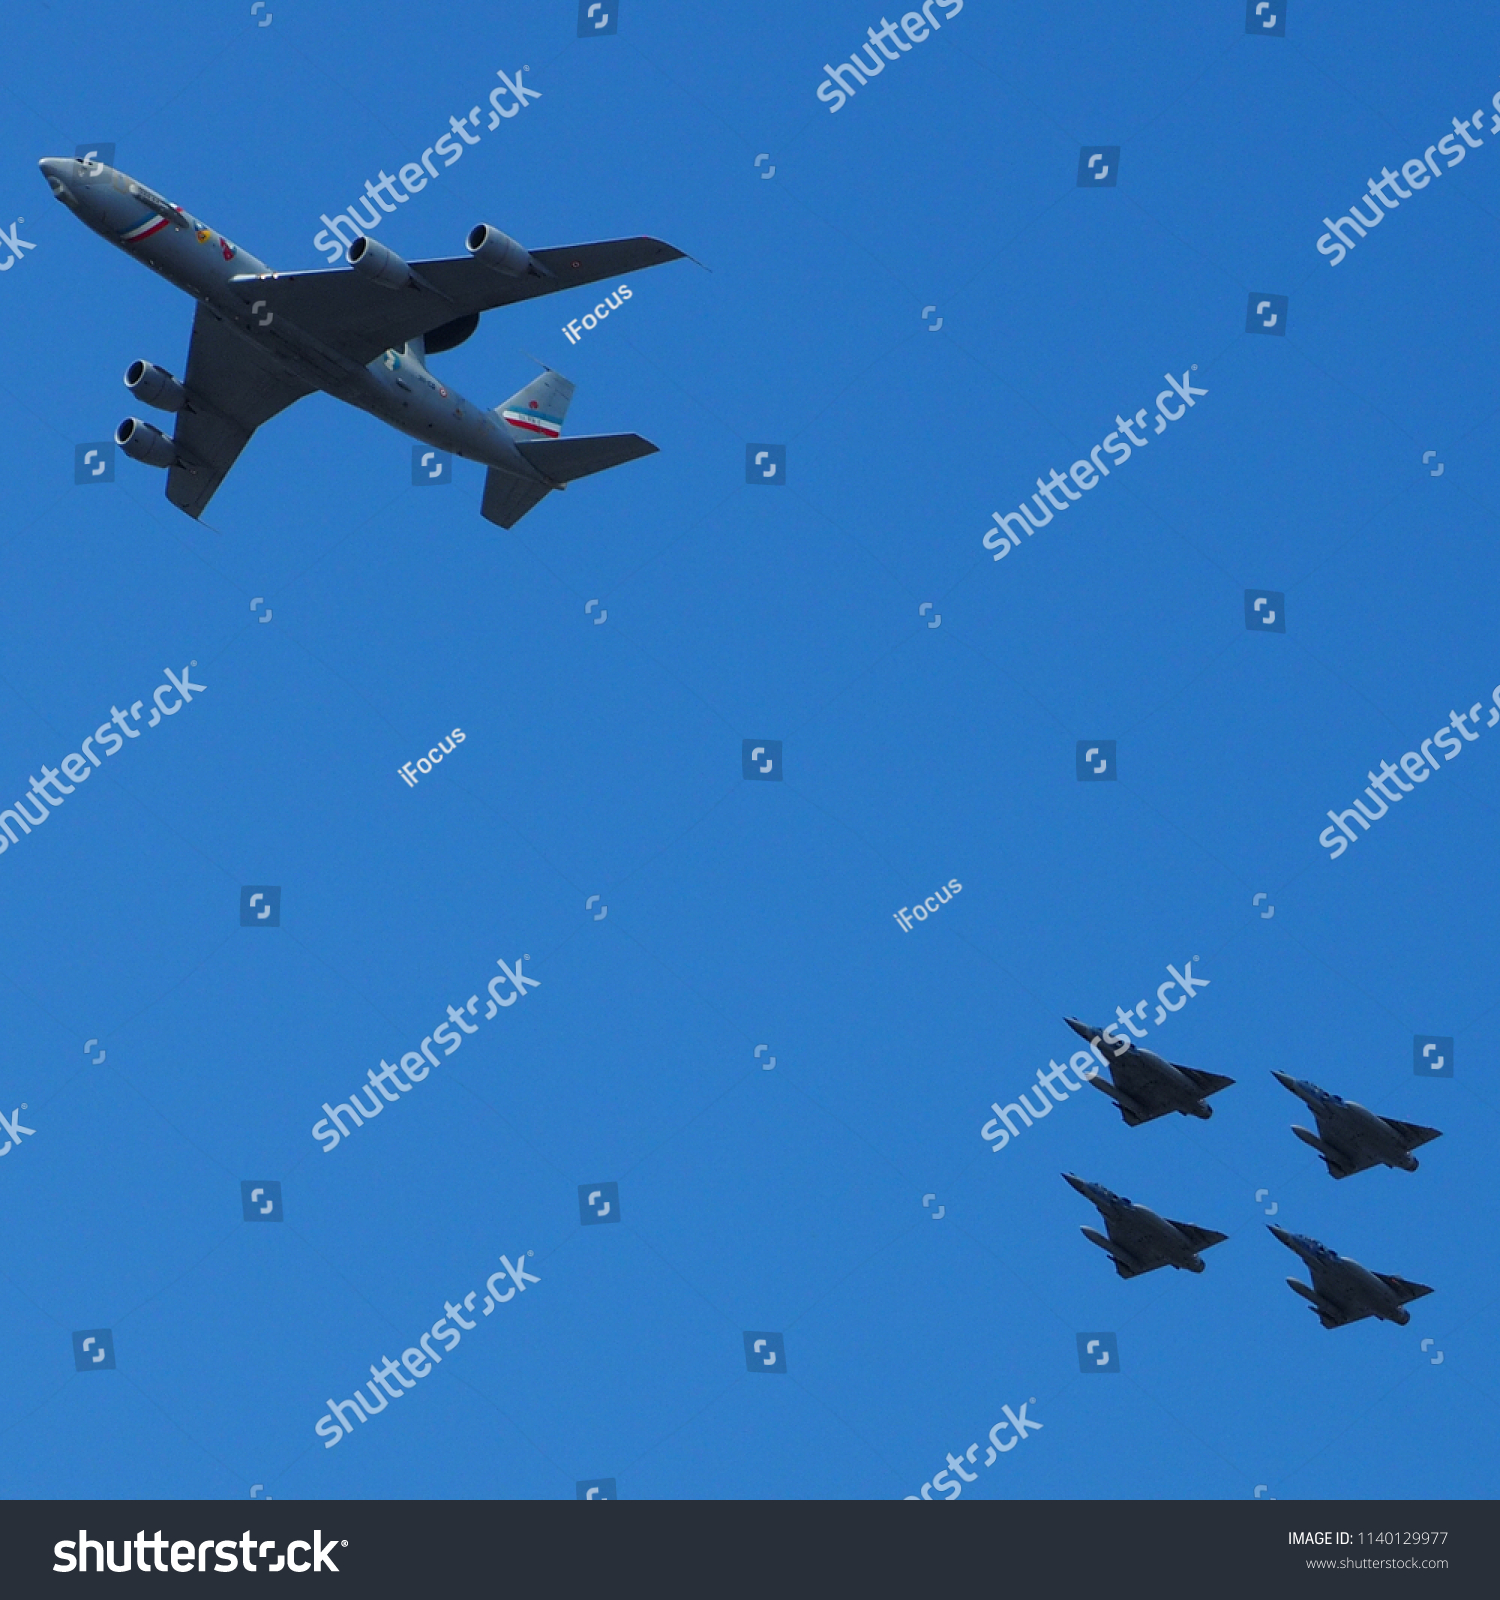 PARIS, FRANCE - JULY 14, 2018: A Boeing AWACS 1E3F and Mirage 2000 jet fighters fly over the French capital on July 14, 2018 in Paris, France.